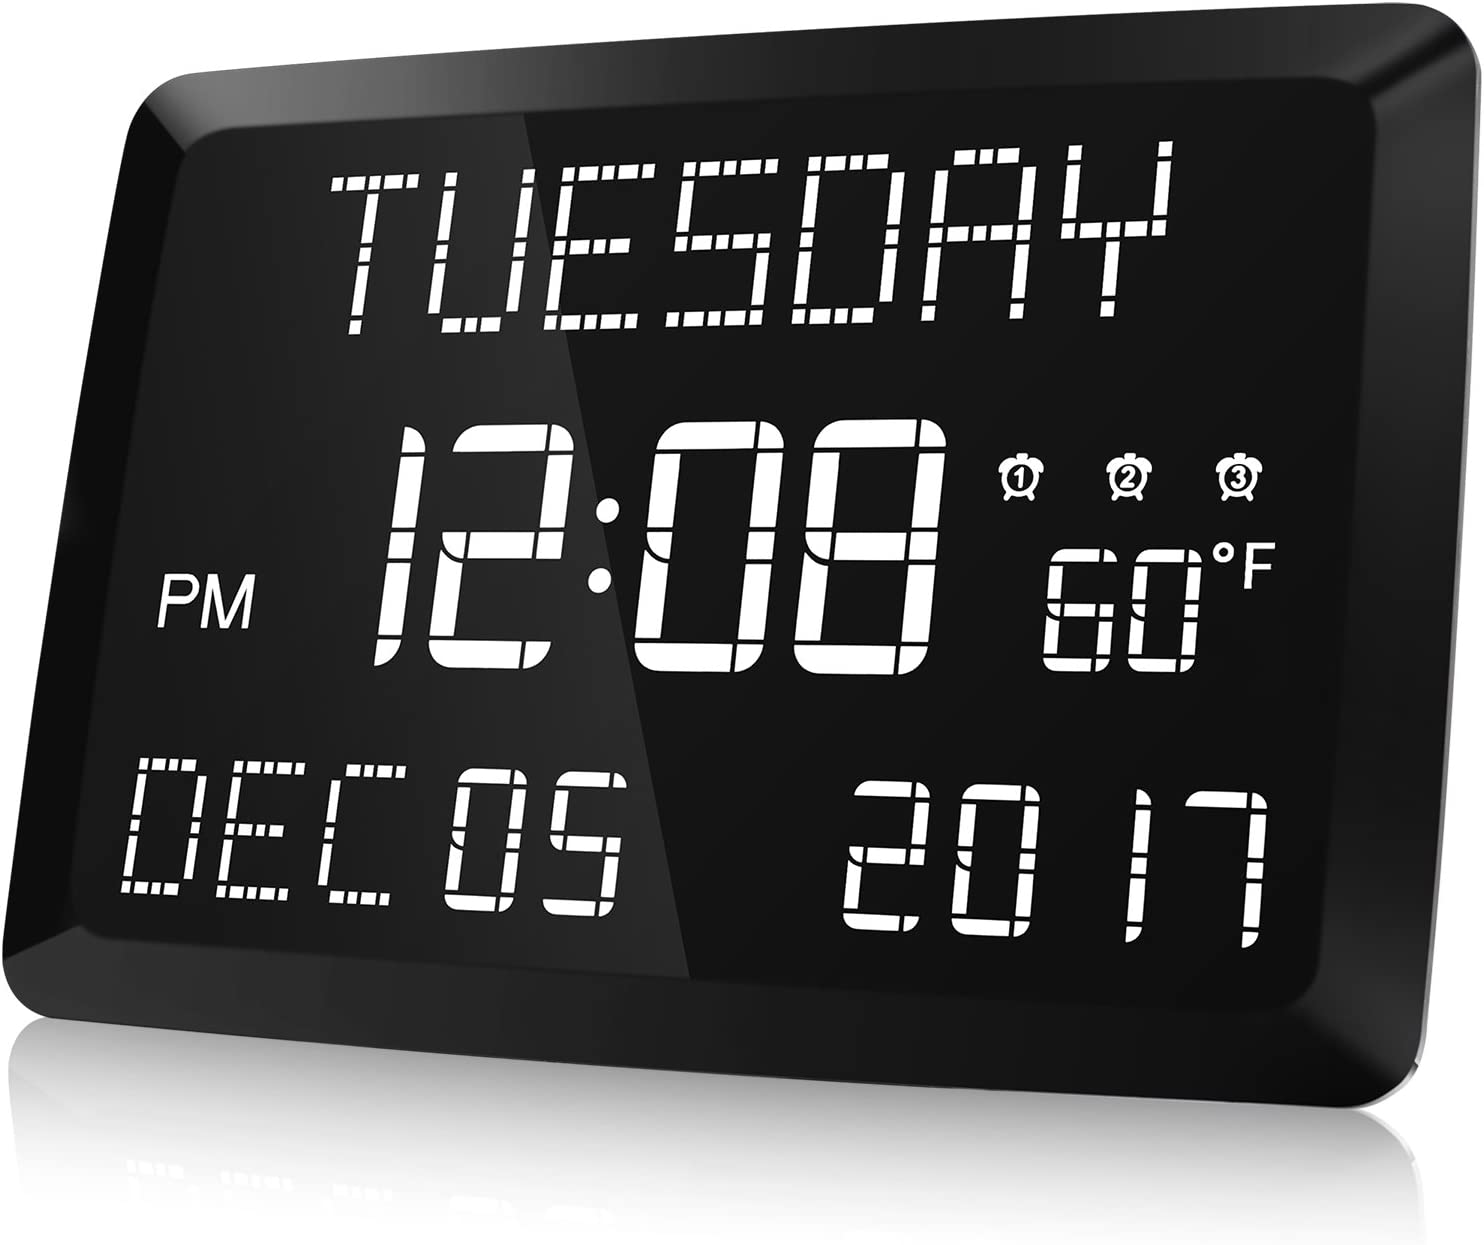 Large LED Digital Dimmable Wall Clock